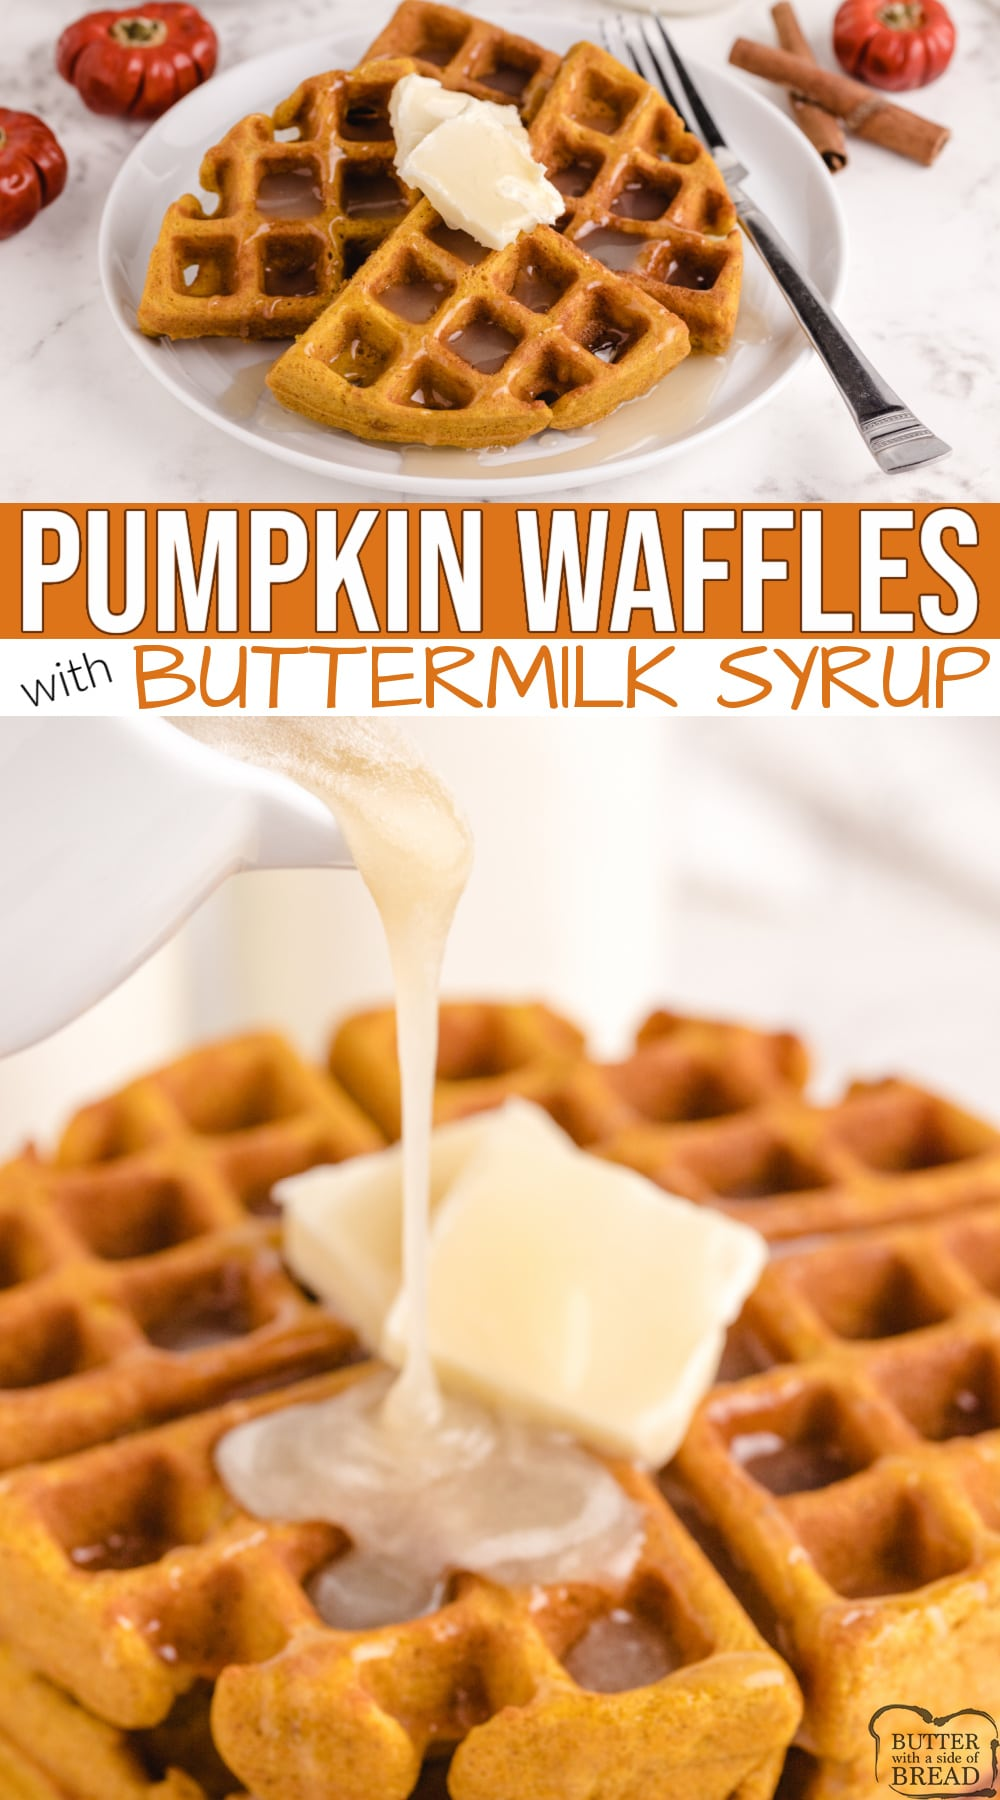 Pumpkin Waffles with Buttermilk Syrup are a favorite fall breakfast. Easy pumpkin waffle recipe made with canned pumpkin and then topped with a simple homemade syrup that is incredible!